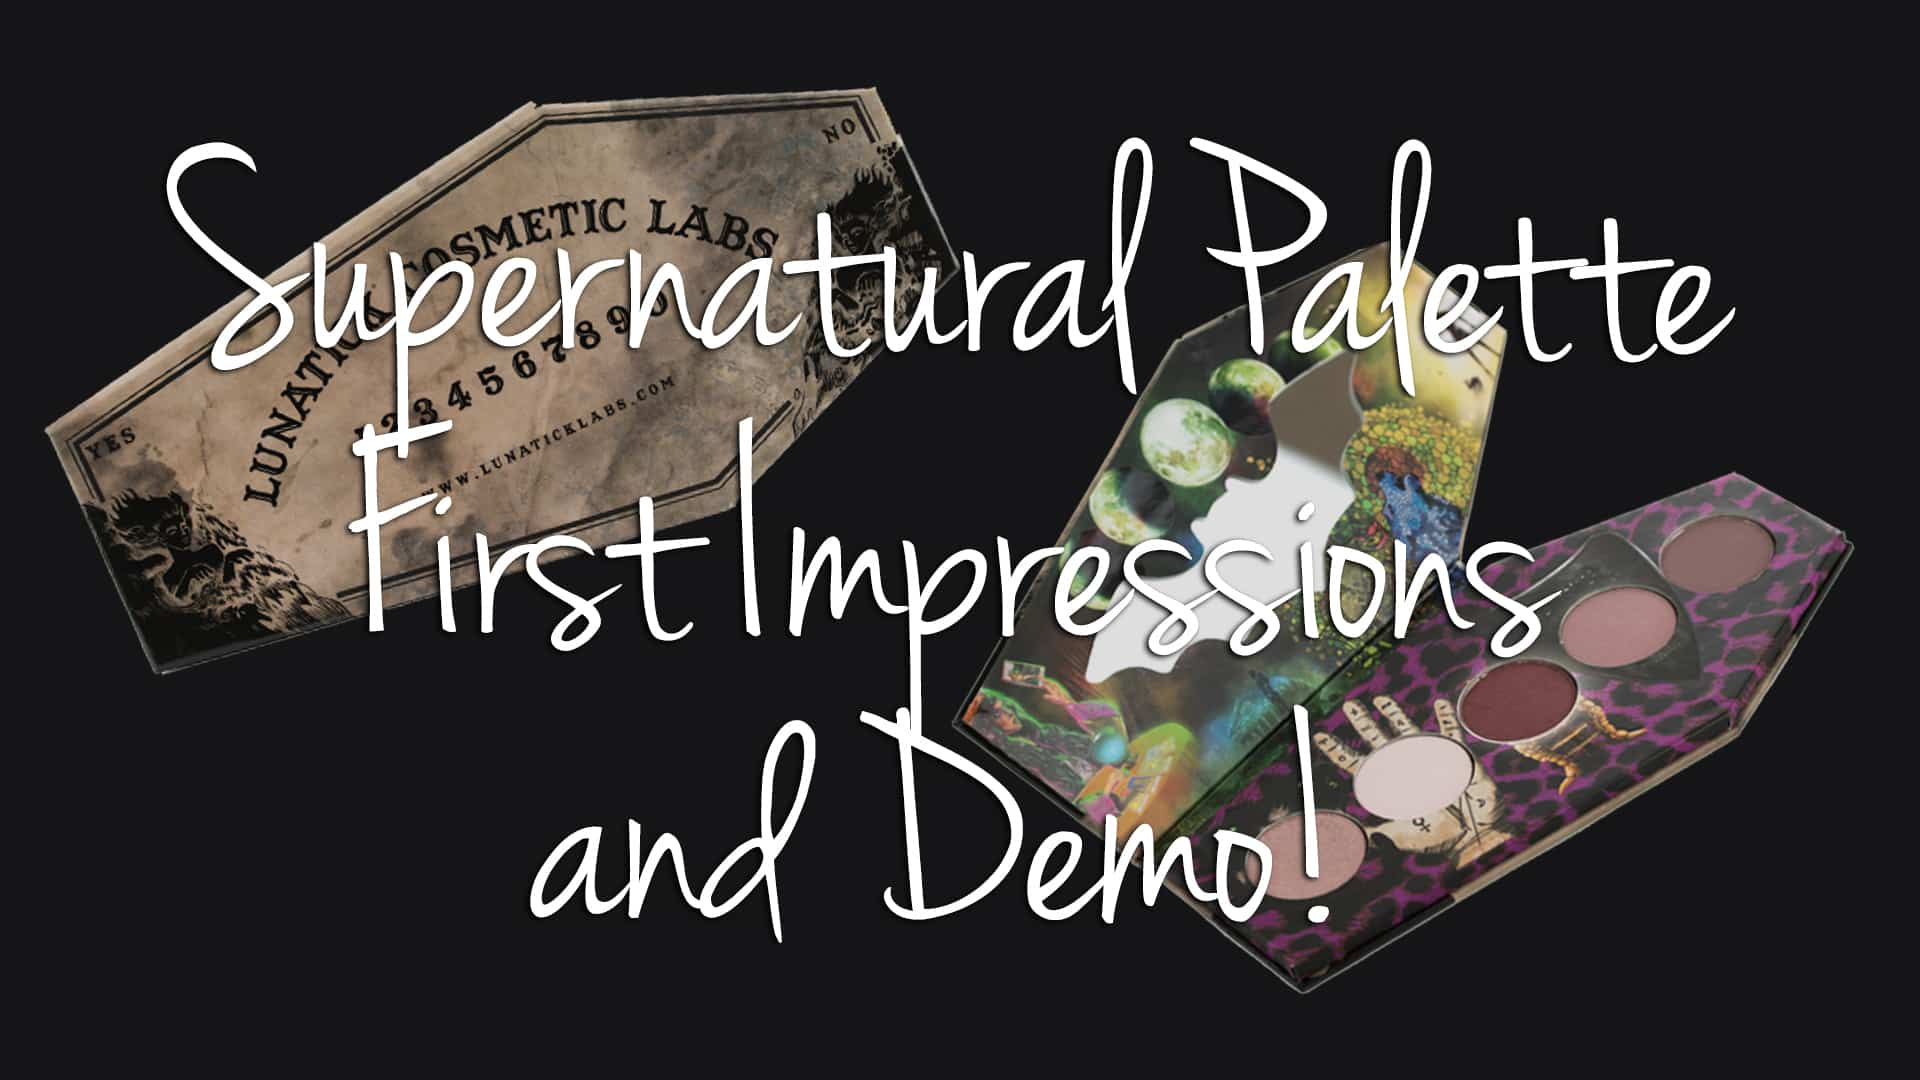 Lunatick Cosmetic Labs Supernatural Palette First Impressions & Demo